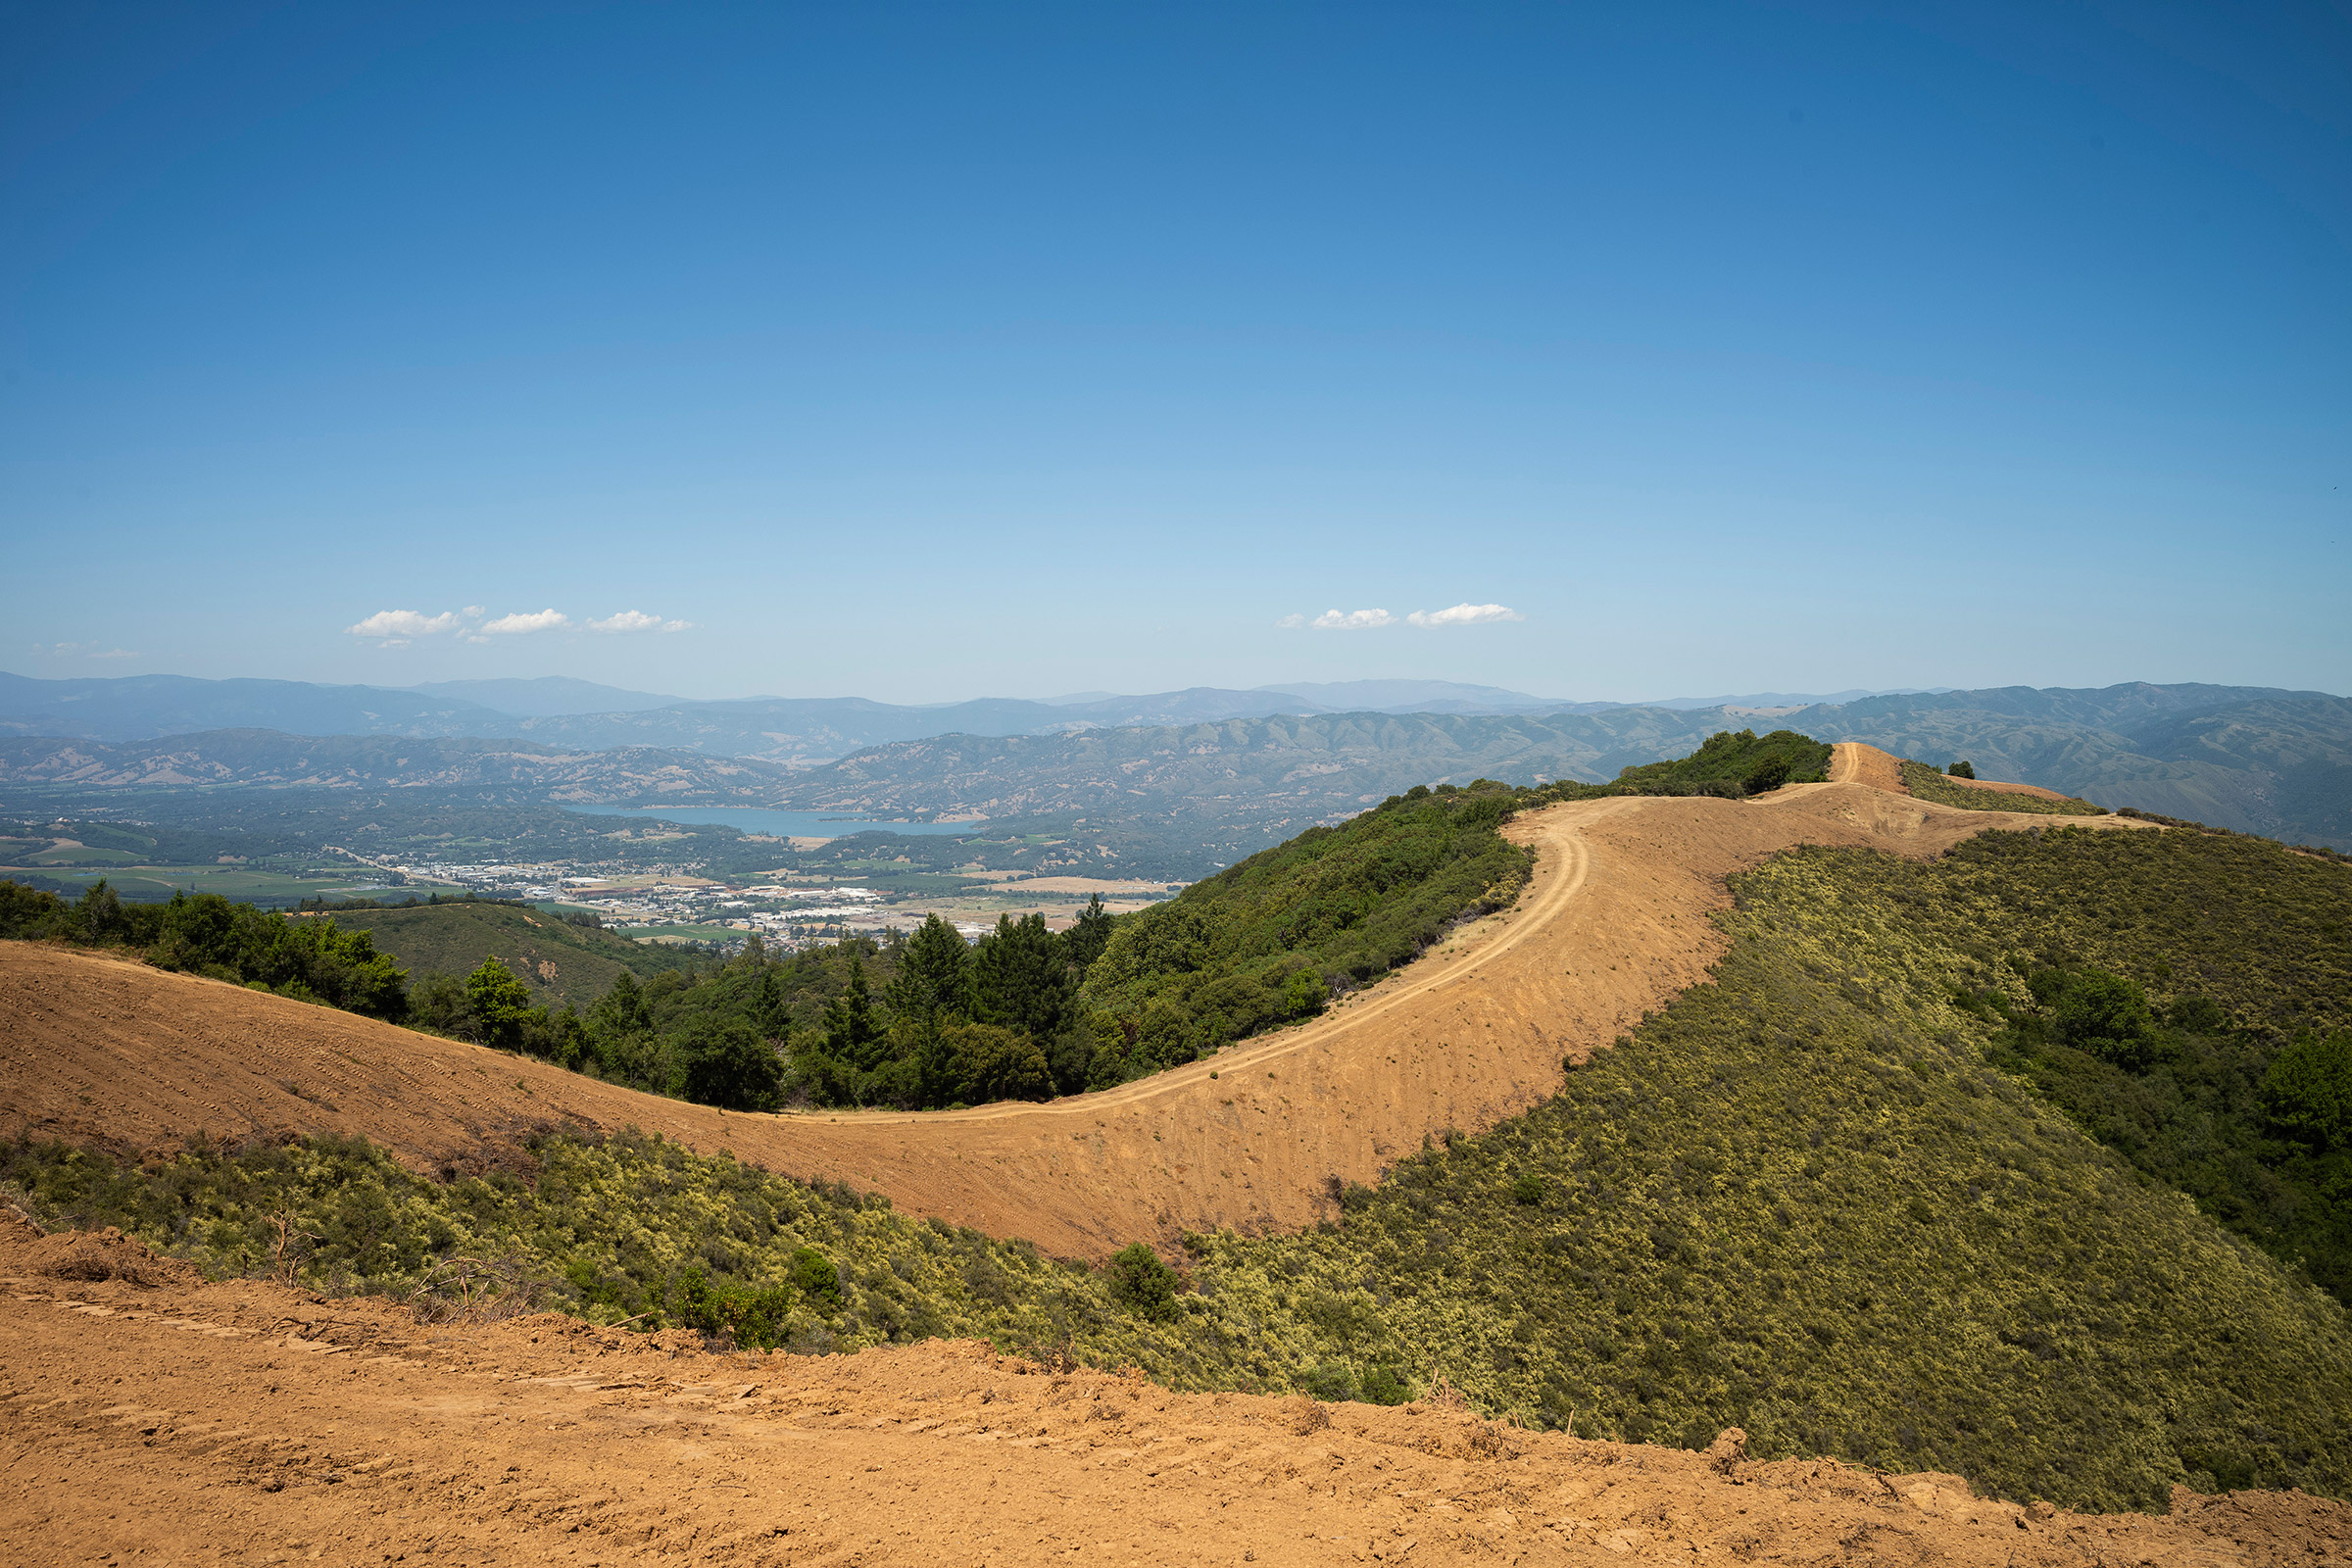 Cal Fire has began cutting large swaths of firebreaks in the hills surrounding Ukiah with bulldozers and inmate firefighter crews, to help defend the city in case of catastrophic wildfire.